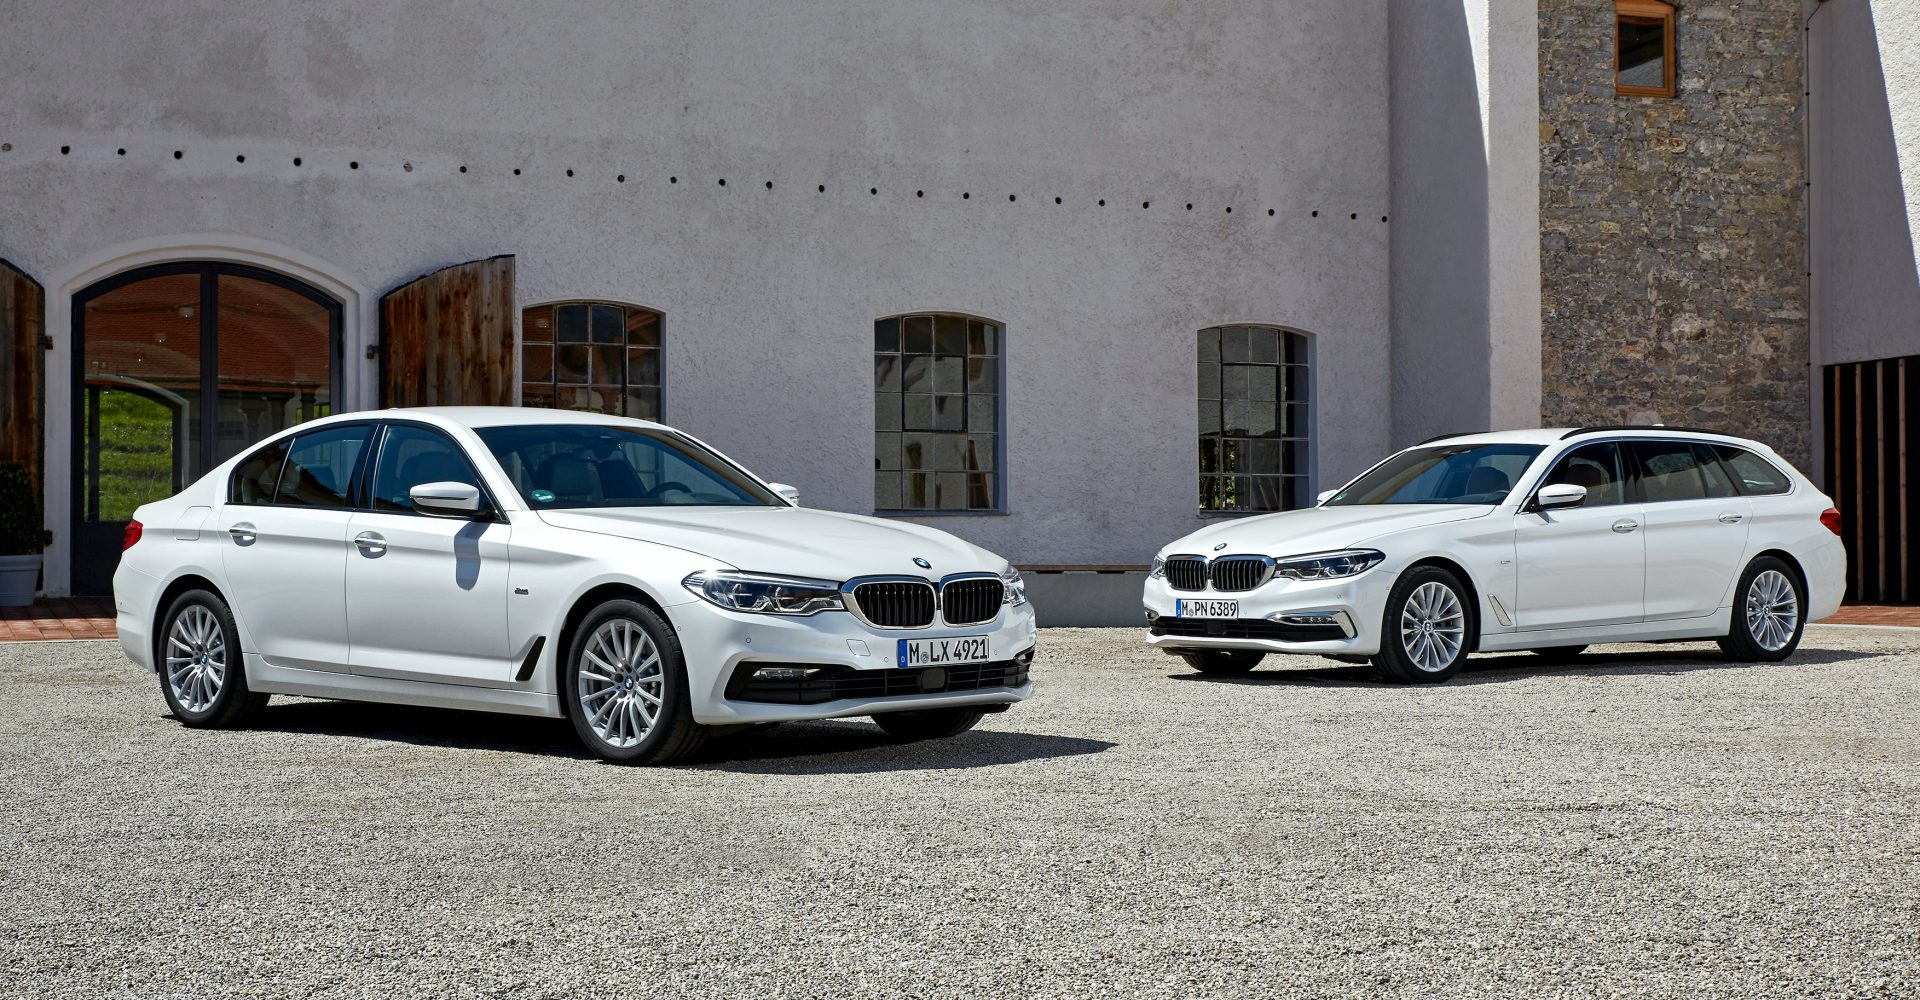 BMW announces further details about new 545e plug-in hybrid